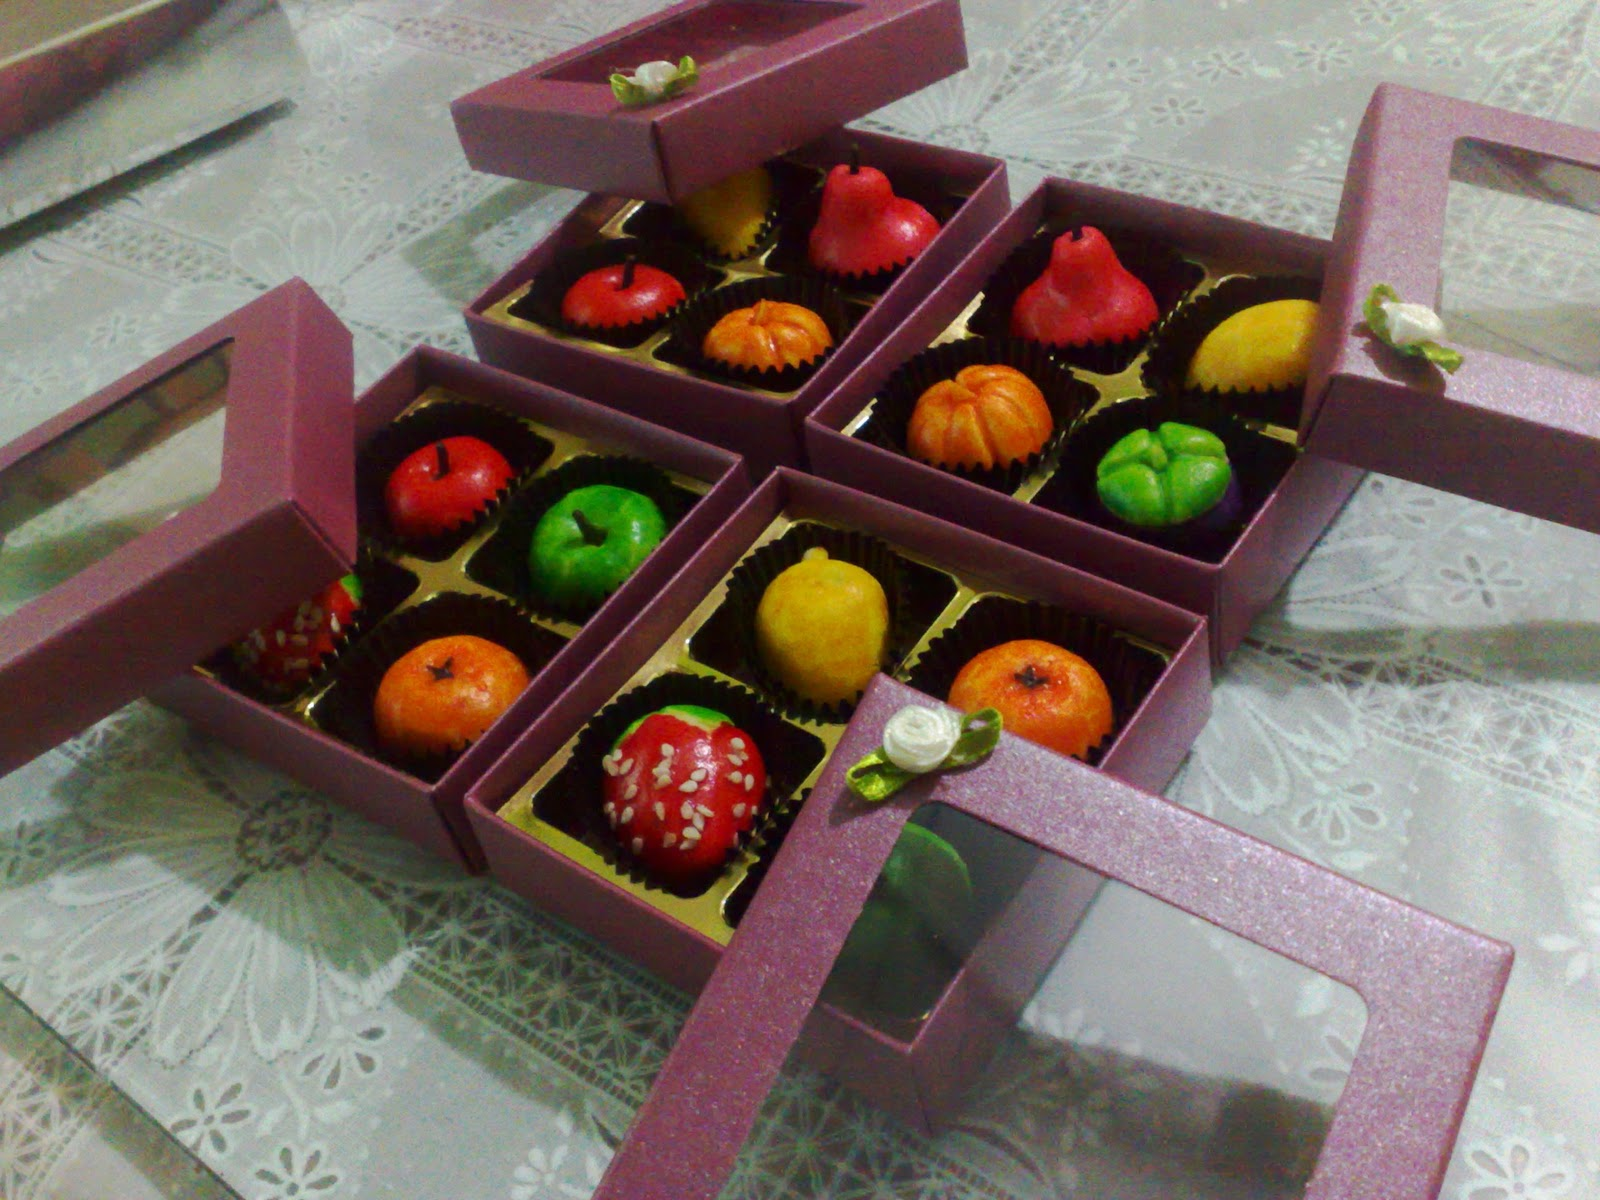 Izrin bakery hantaran door gift tunang for Idea door gift tunang